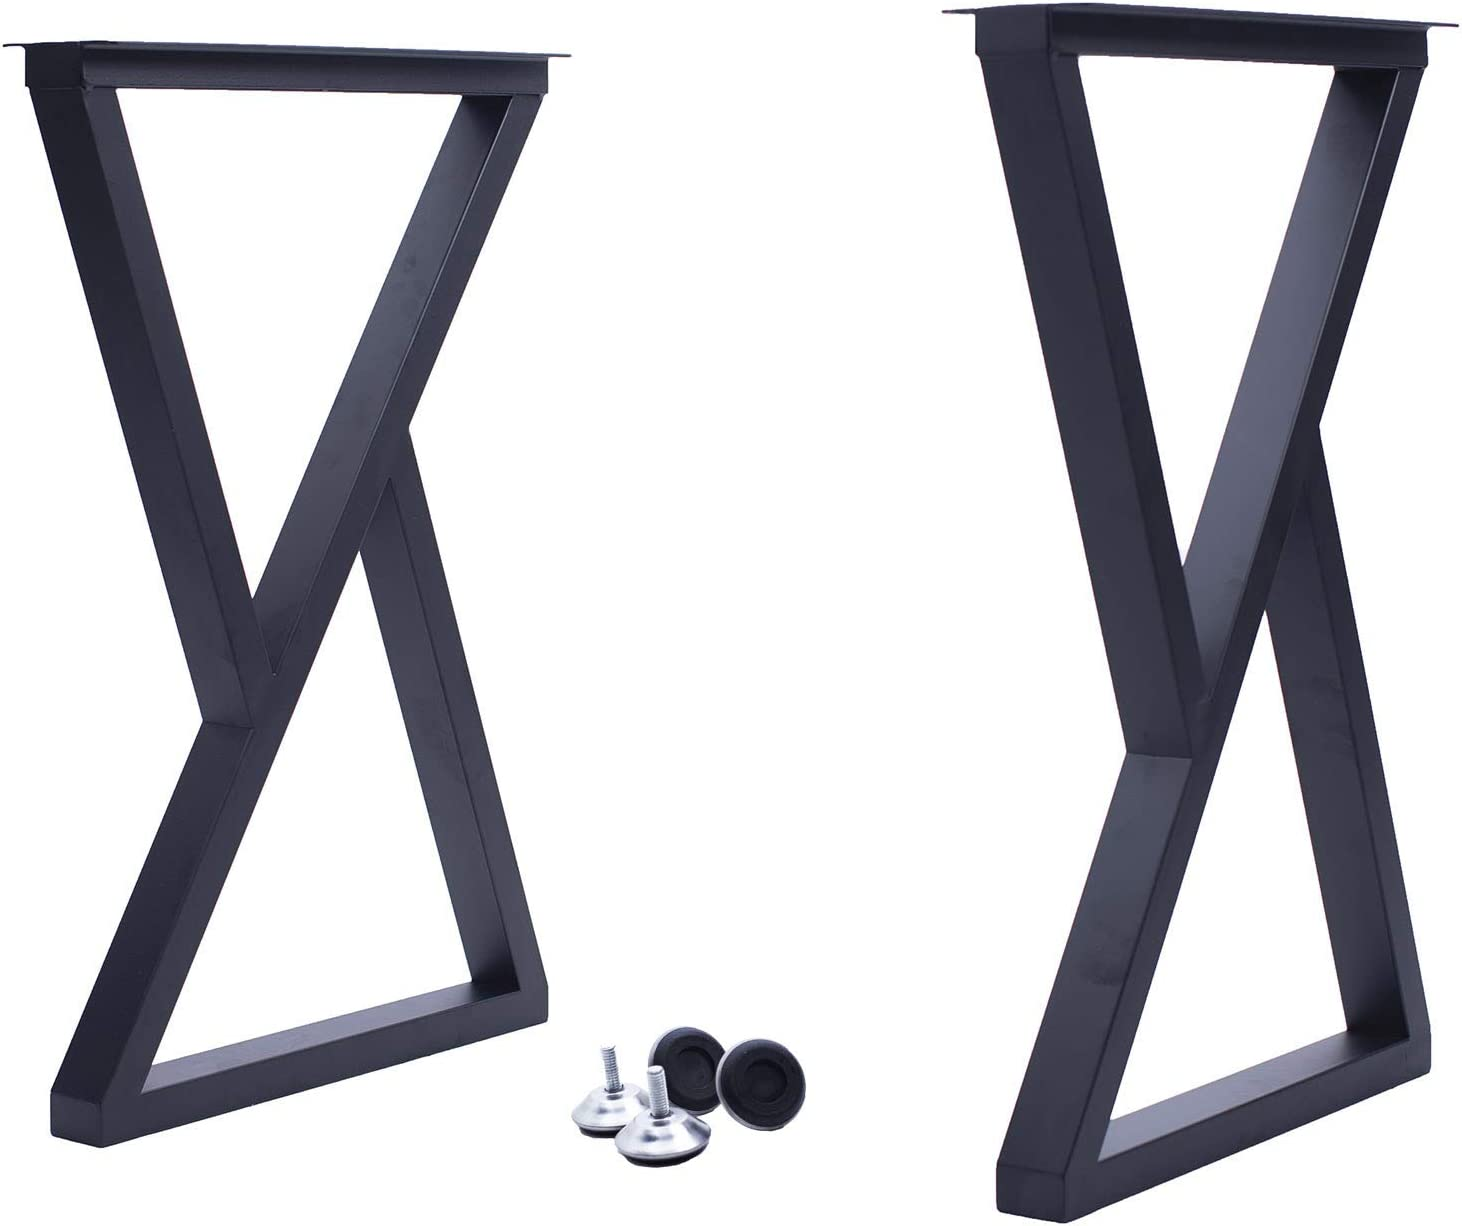 FPLX 28 inch Tall Desk Legs, Dining Table Legs Metal Kitchen Legs for Furniture, Set of 2